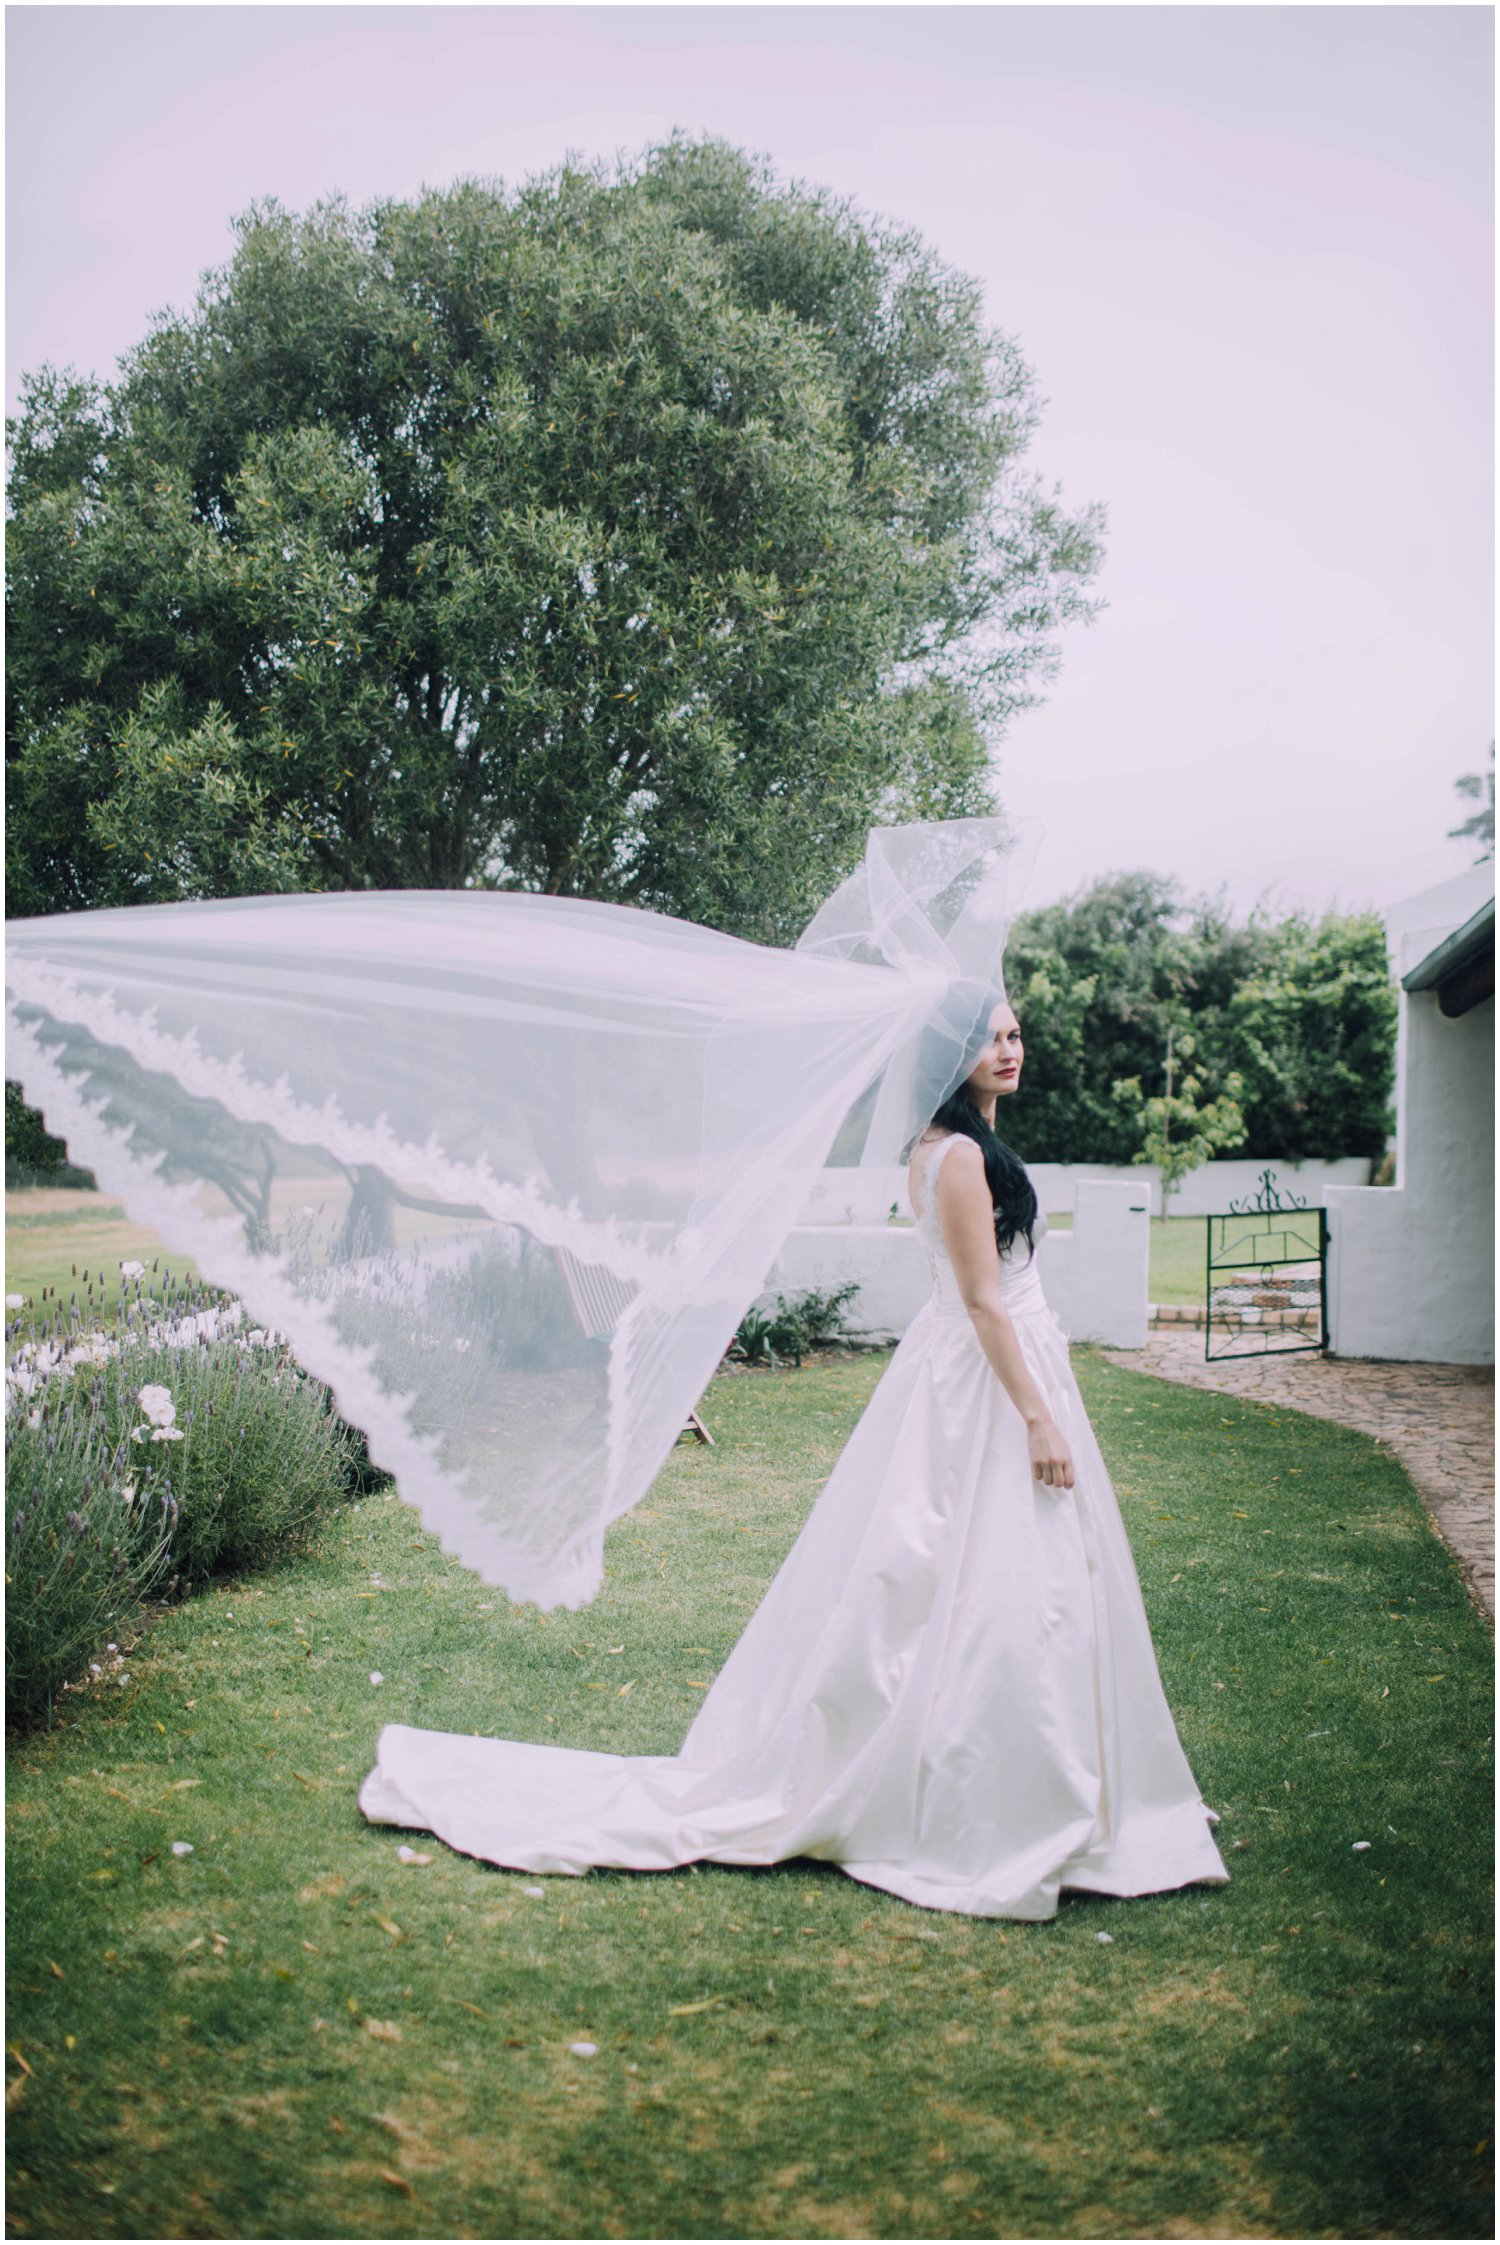 Top Wedding Photographer Cape Town South Africa Artistic Creative Documentary Wedding Photography Rue Kruger_0846.jpg